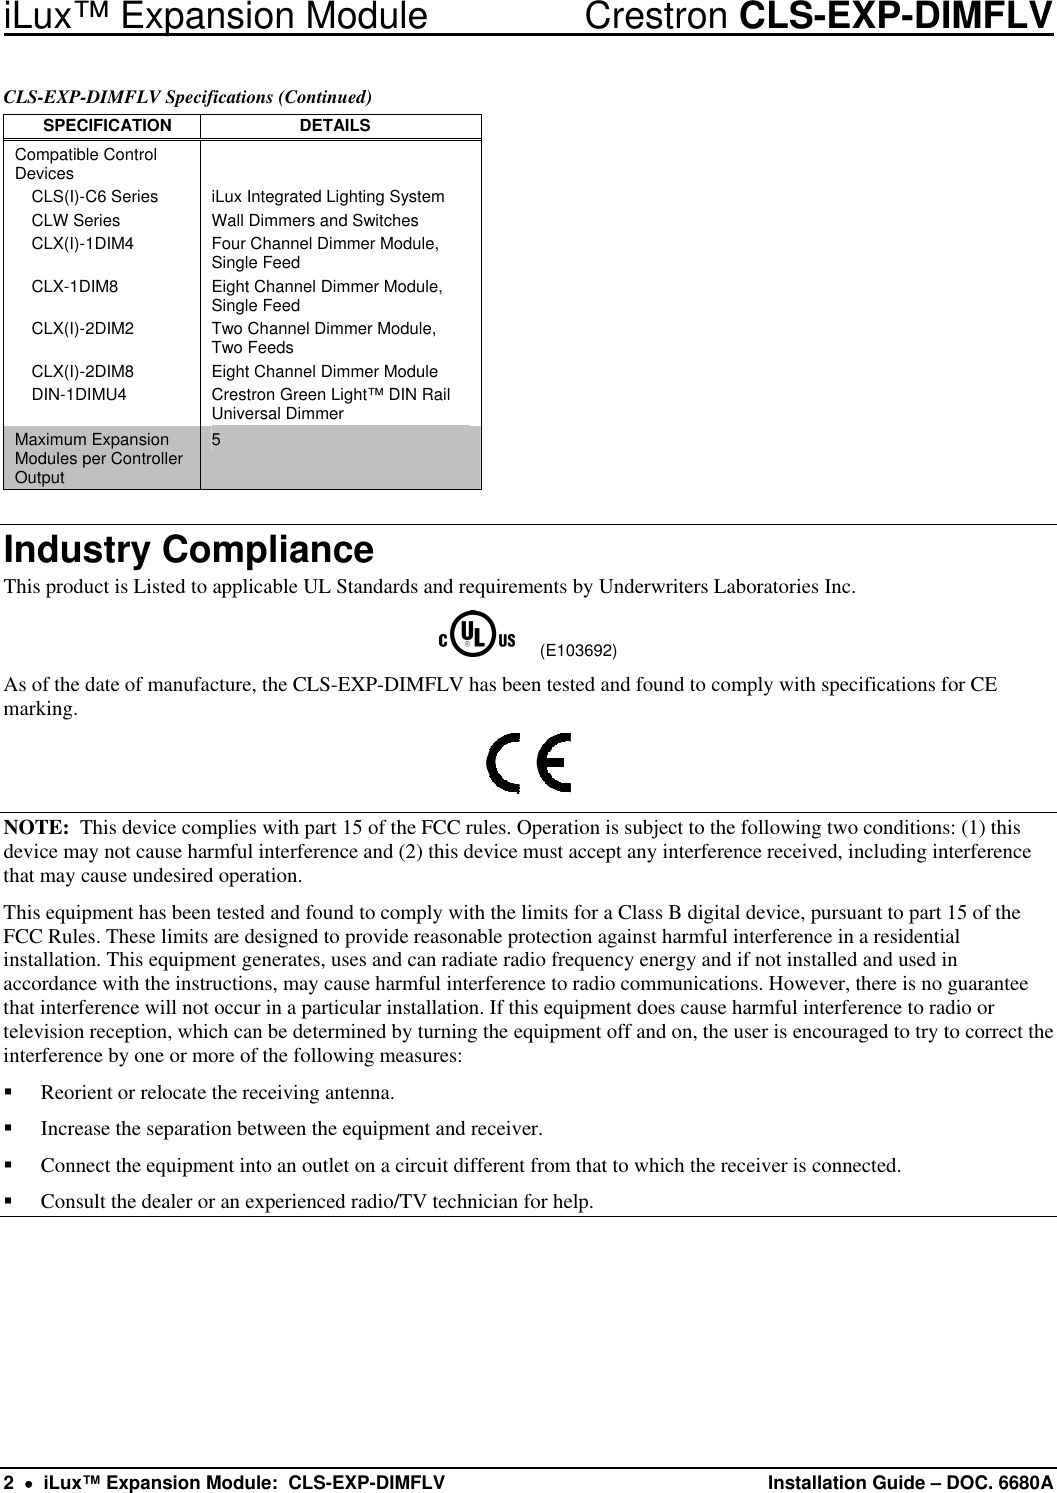 Crestron Electronic Cls Exp Dimflv Users Manual Description Lighting Dimmer Wire Diagram Page 2 Of 8